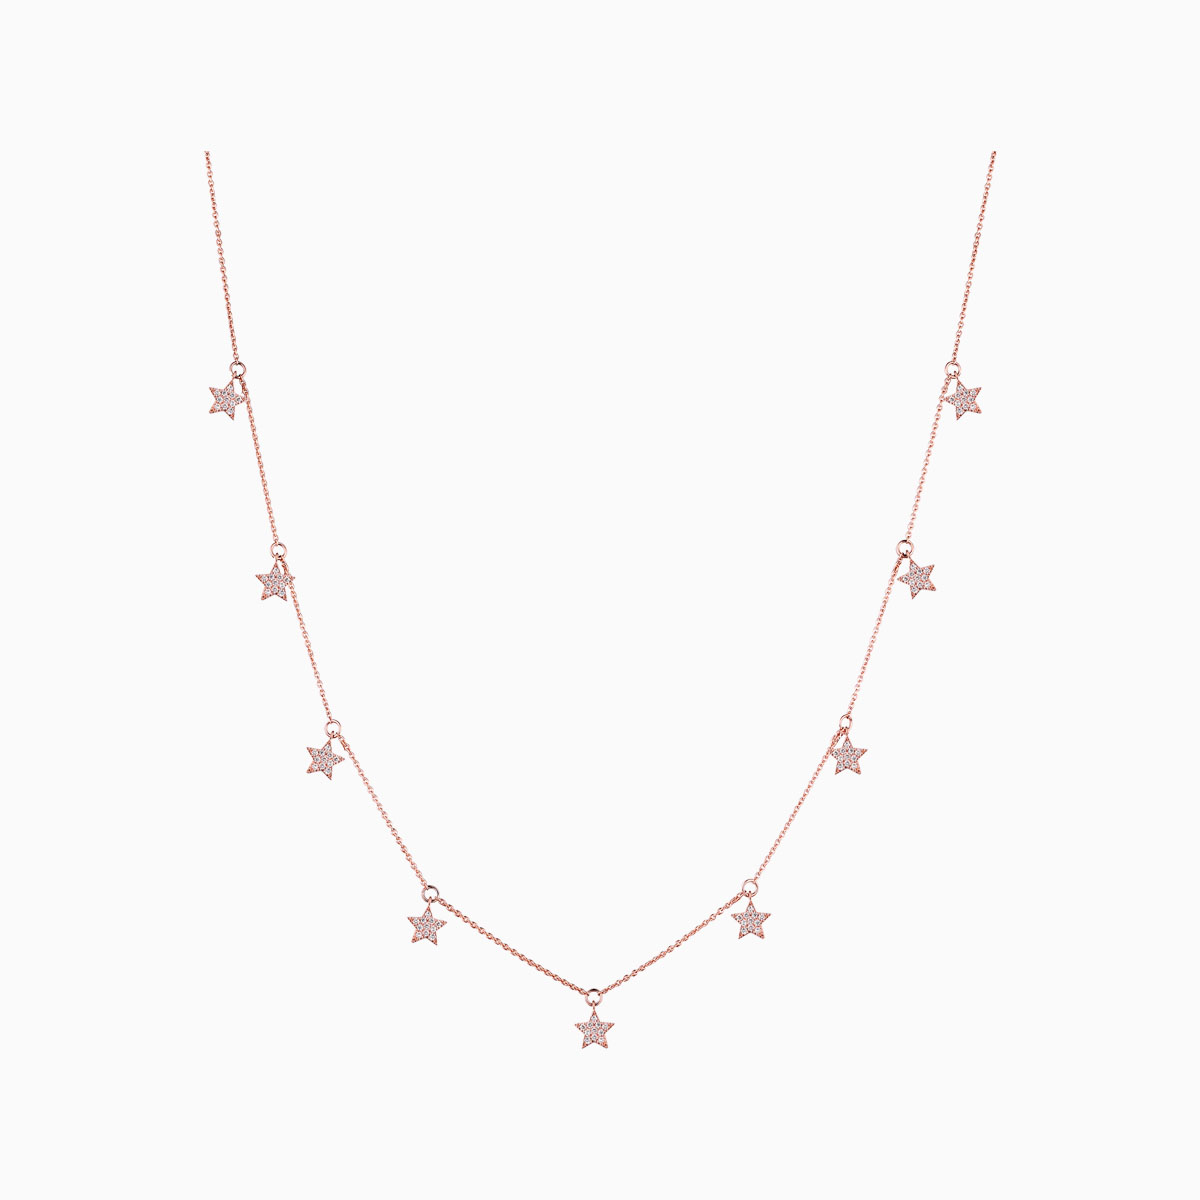 NL25533WHT- 14K Rose Gold Diamond Necklace, 0.63 TCW